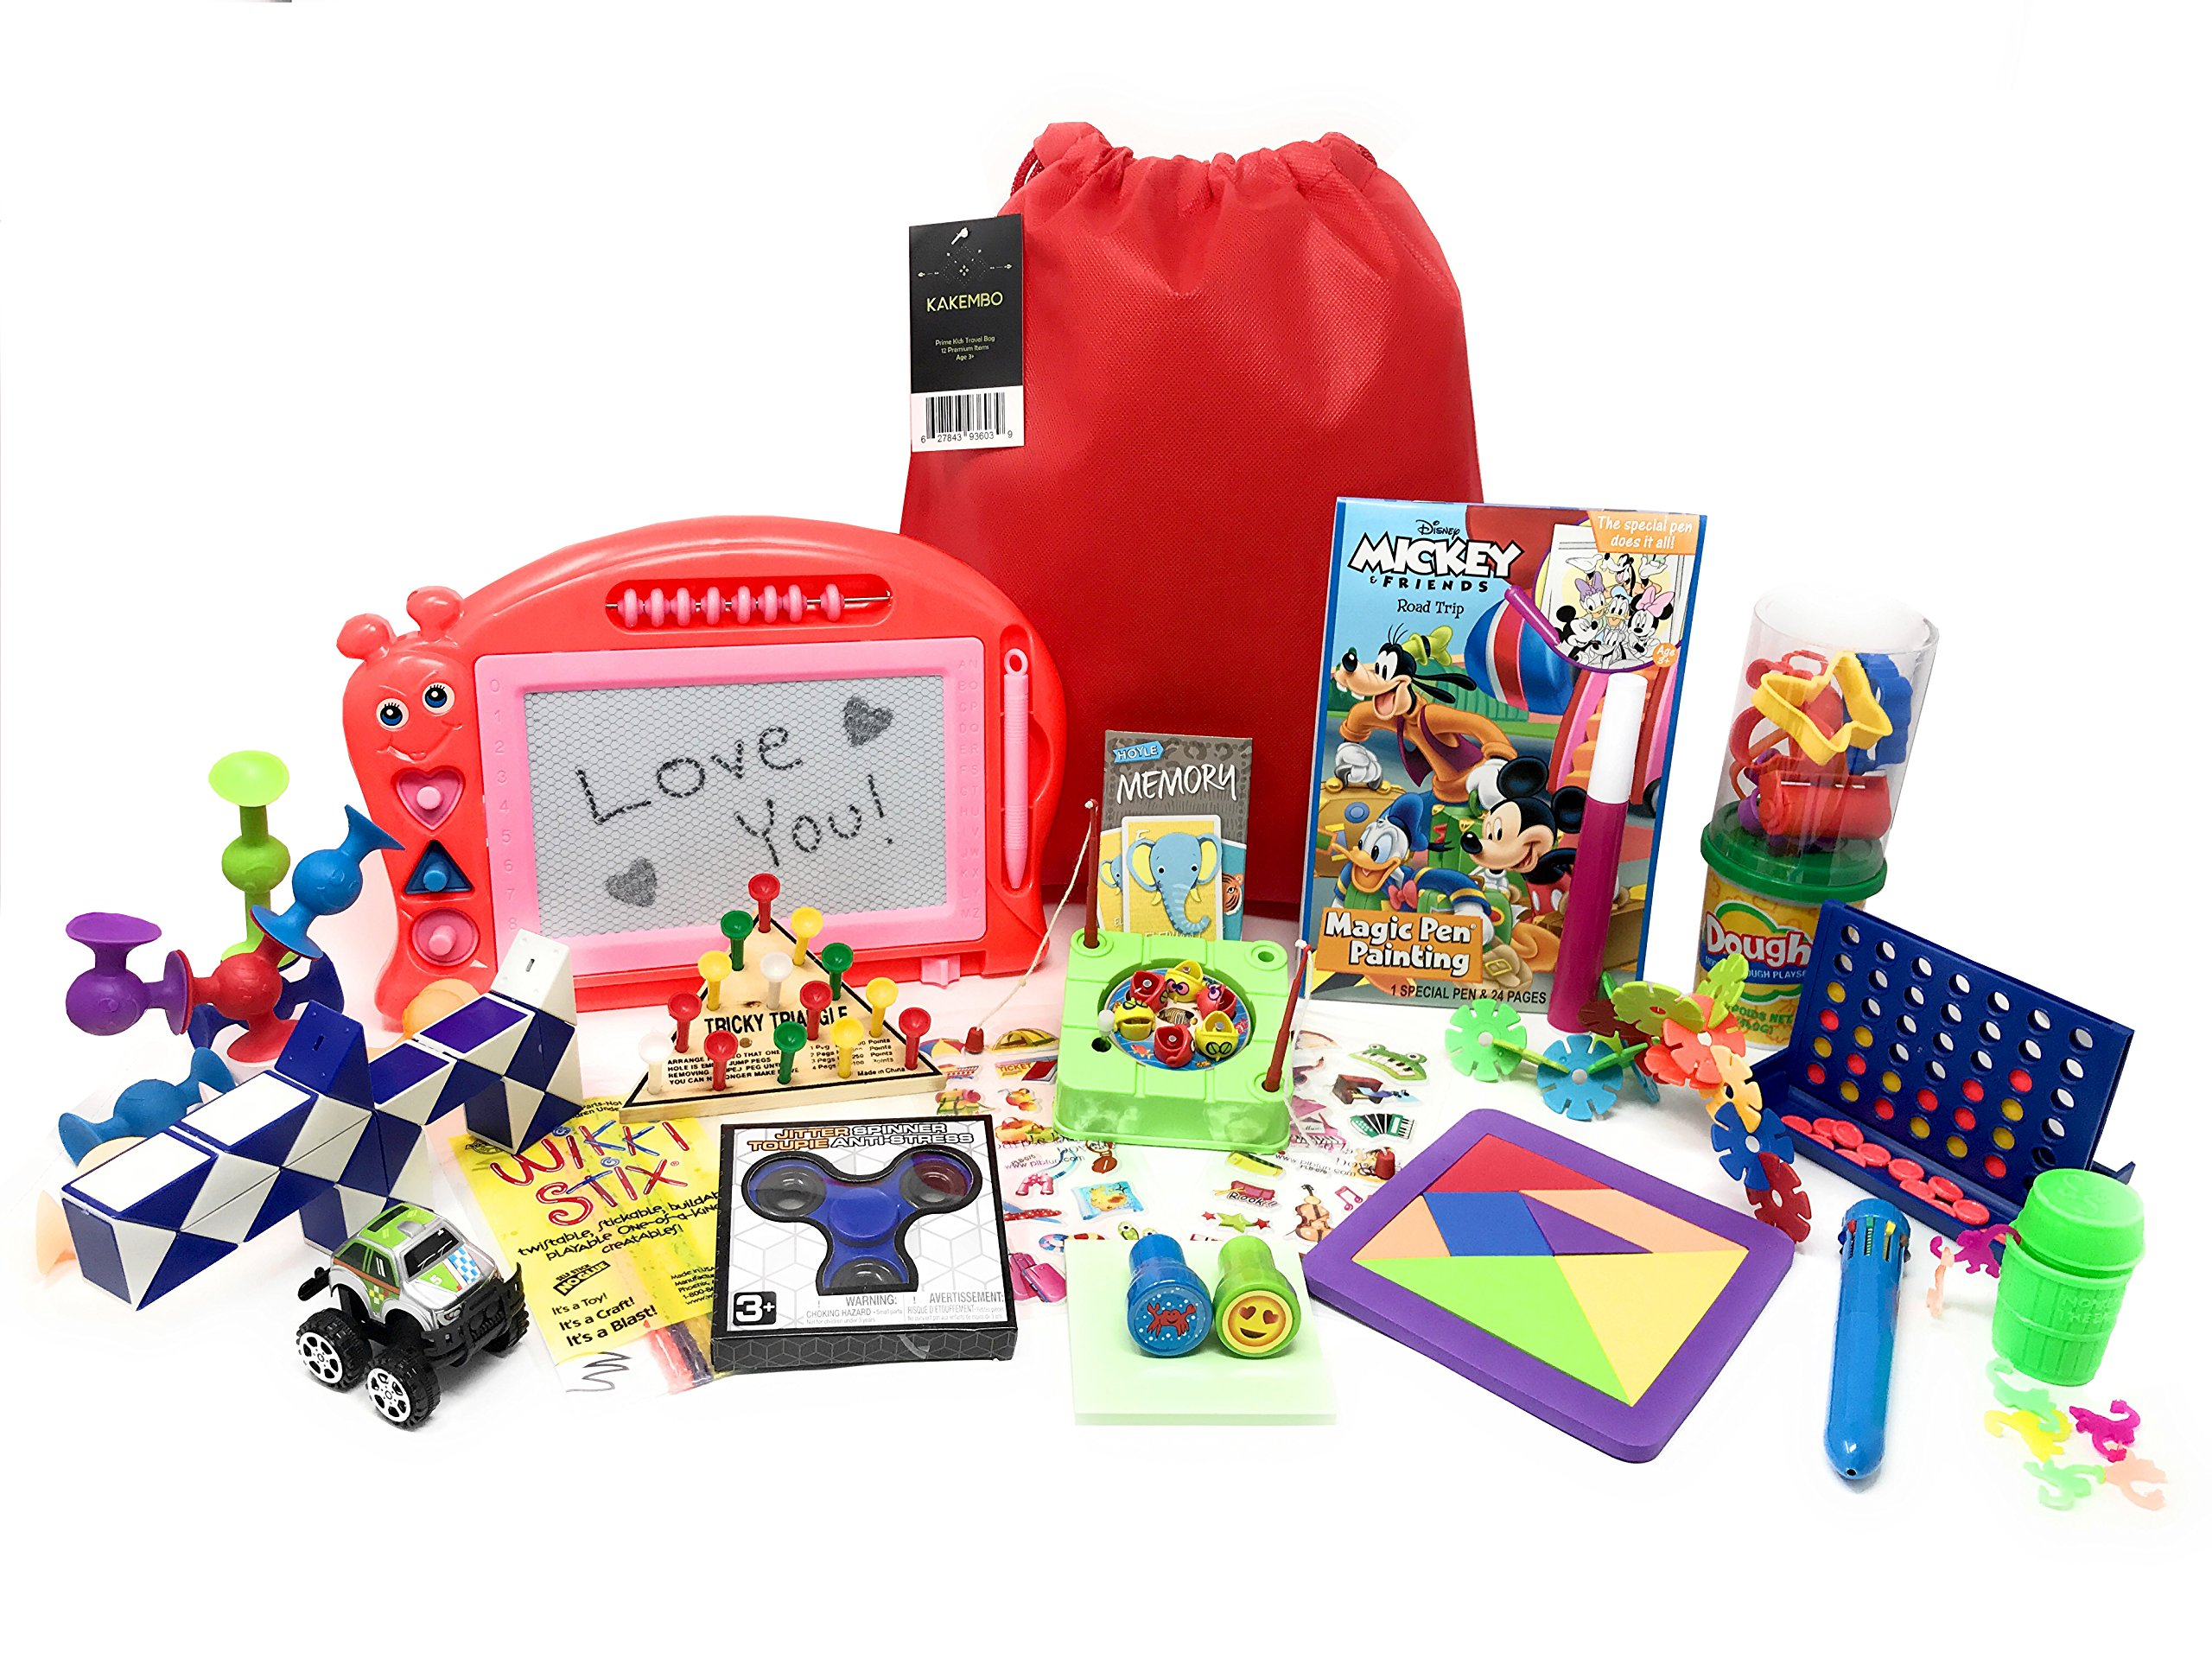 Premium Kids Travel Activity Bag. Full of Travel Games and Travel Toys. Great Road Trip and Airplane Activities for Kids. Includes 20 Premium Items Such as Connect 4 and Fidget Spinner. Ages 5+